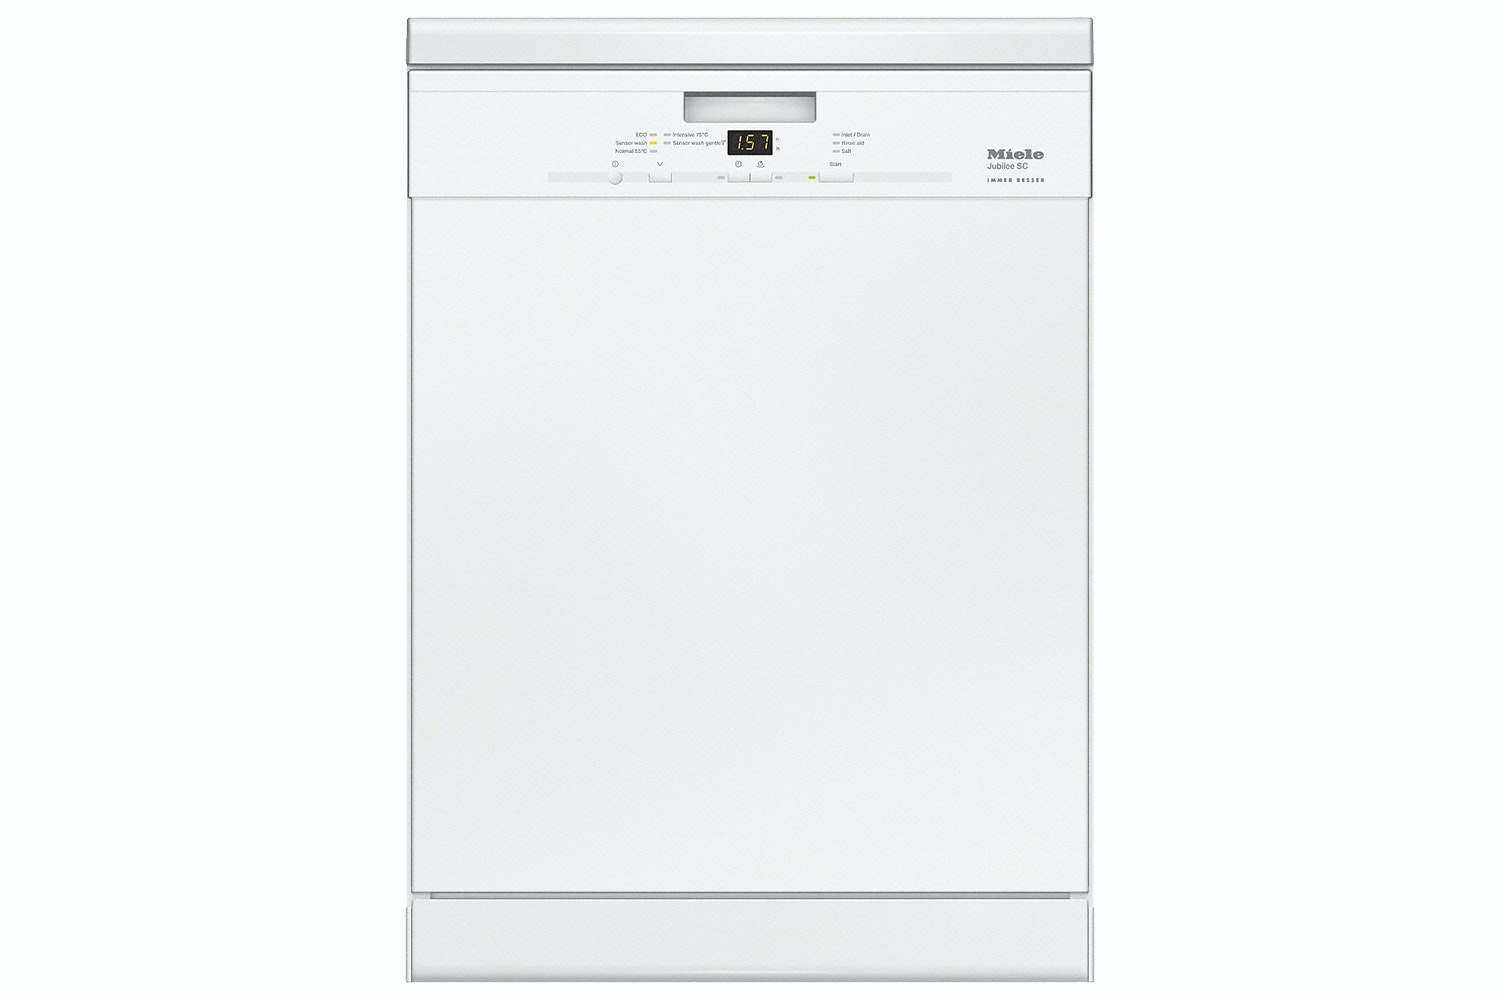 G 4940 Jubilee  Freestanding dishwashers   Delay start and countdown indicator for great entry-level value